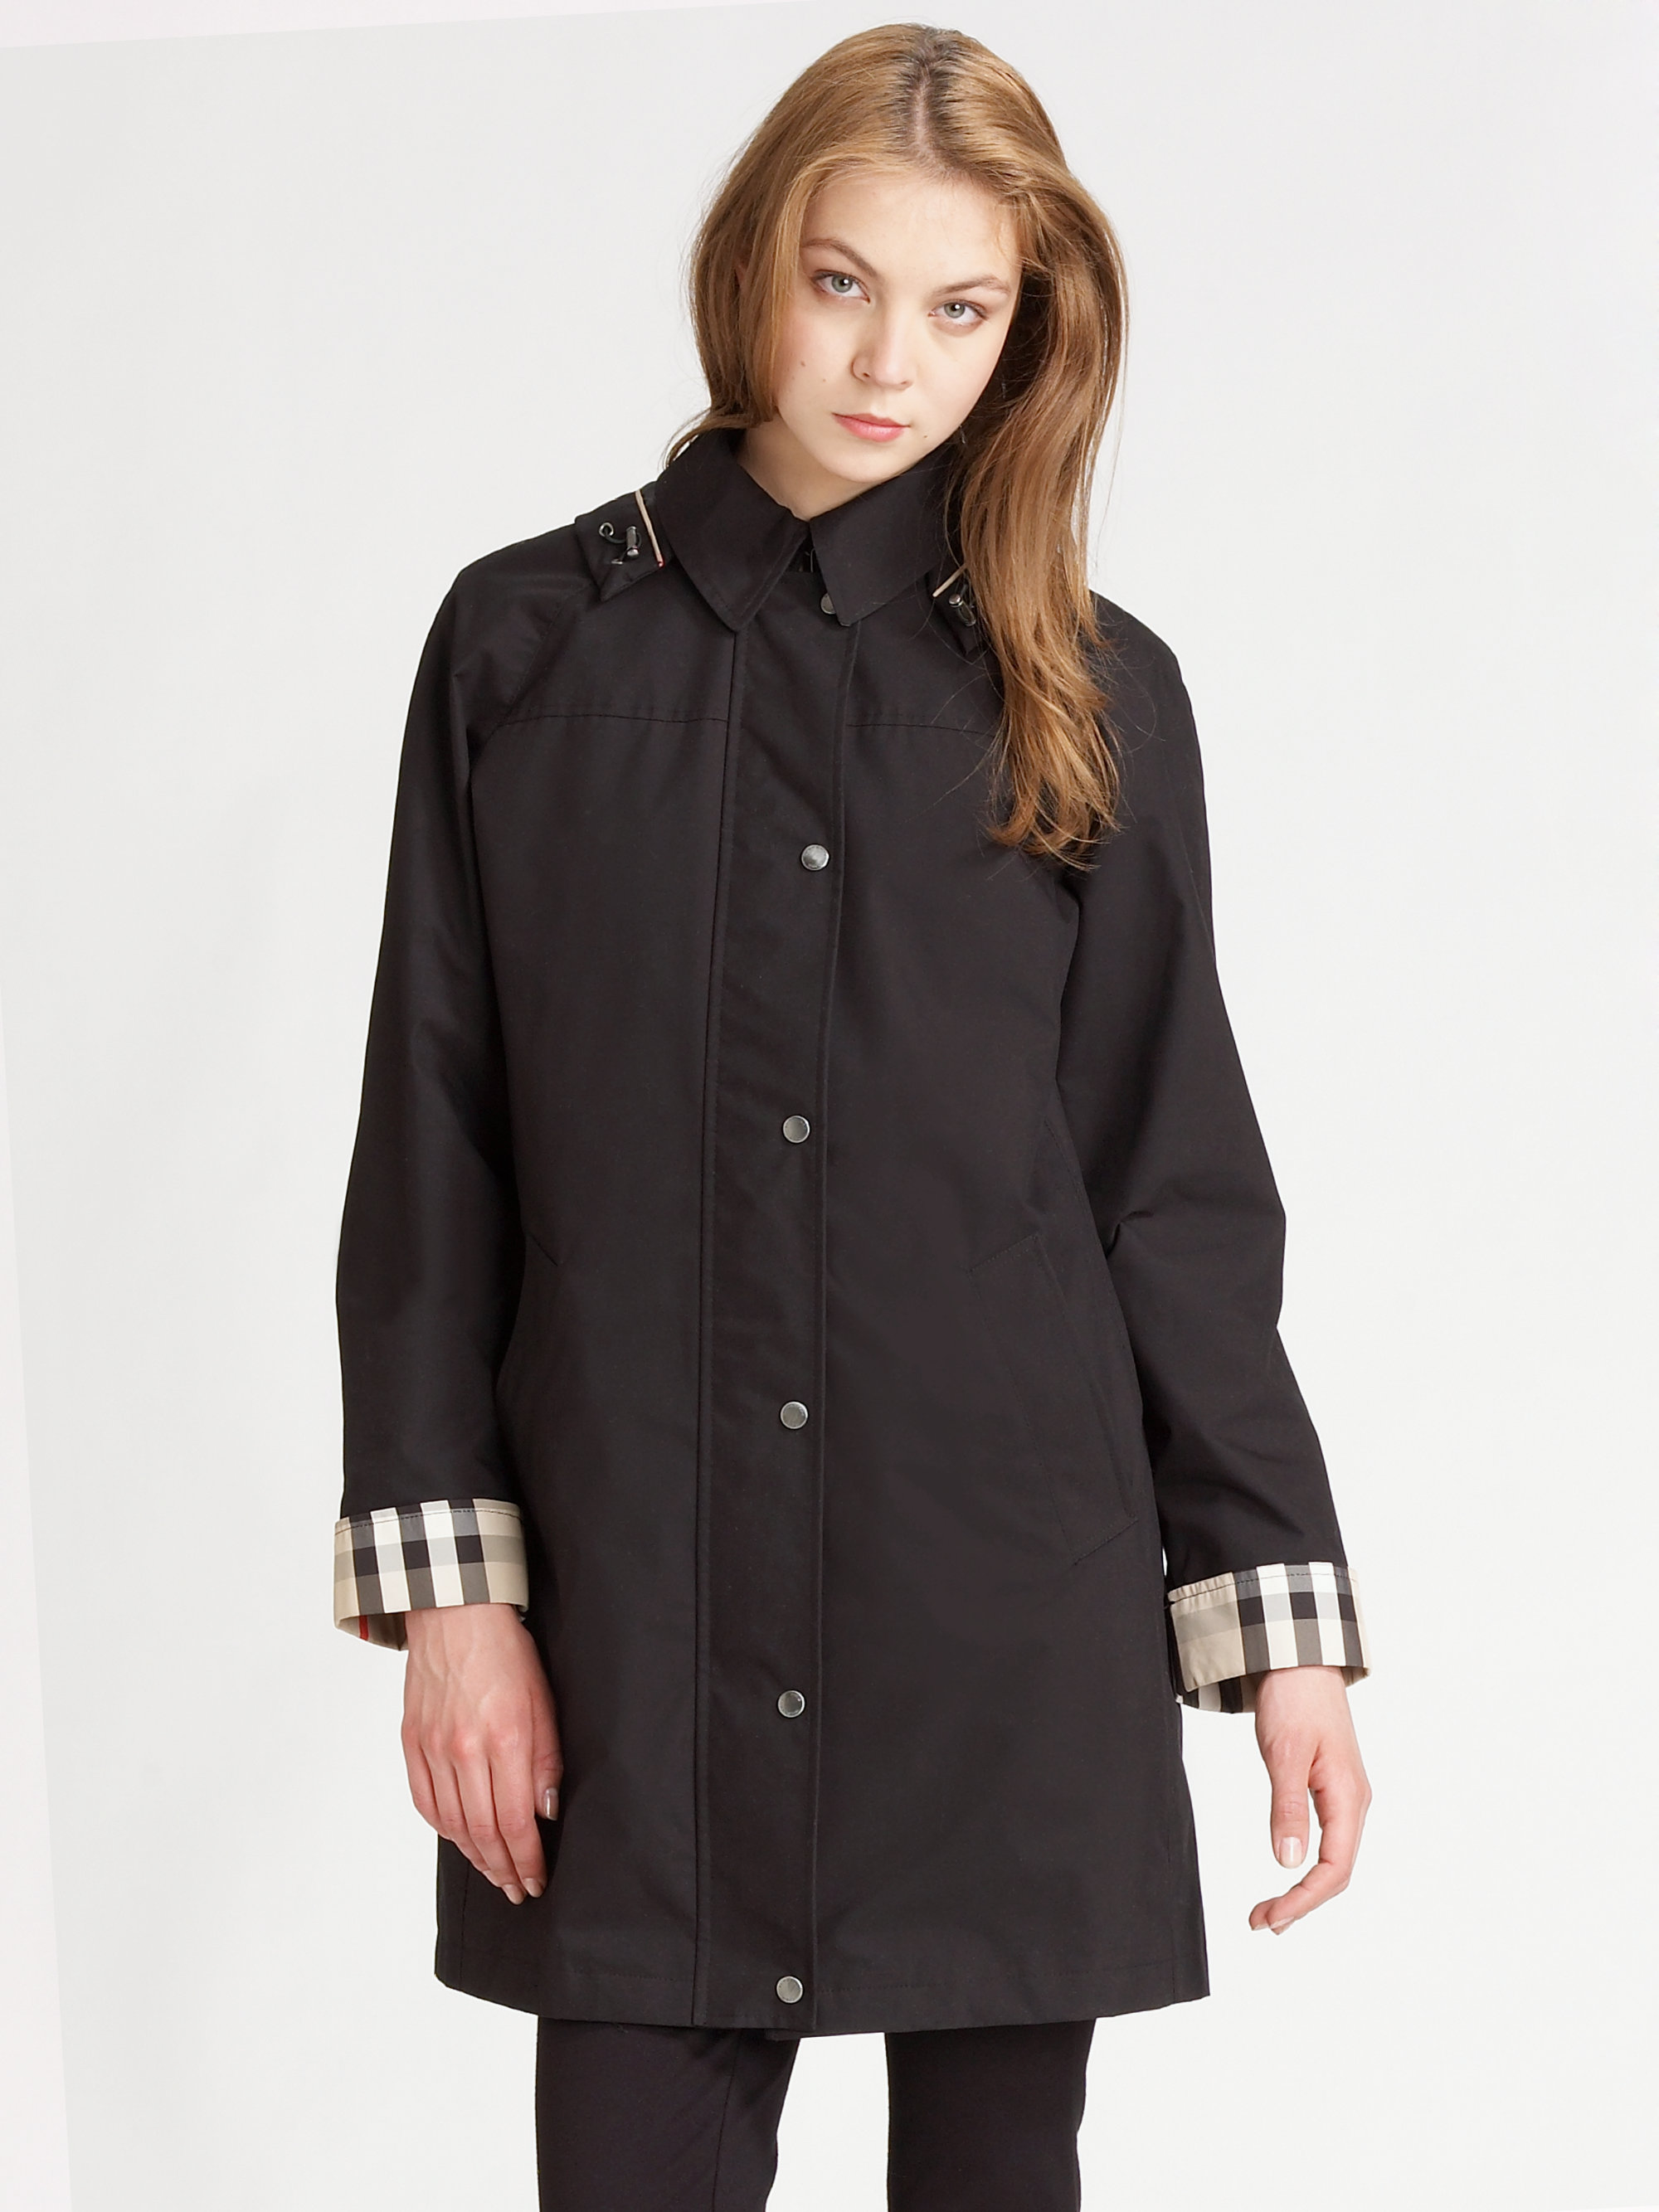 Burberry Brit Hooded Raincoat with Warmer in Black